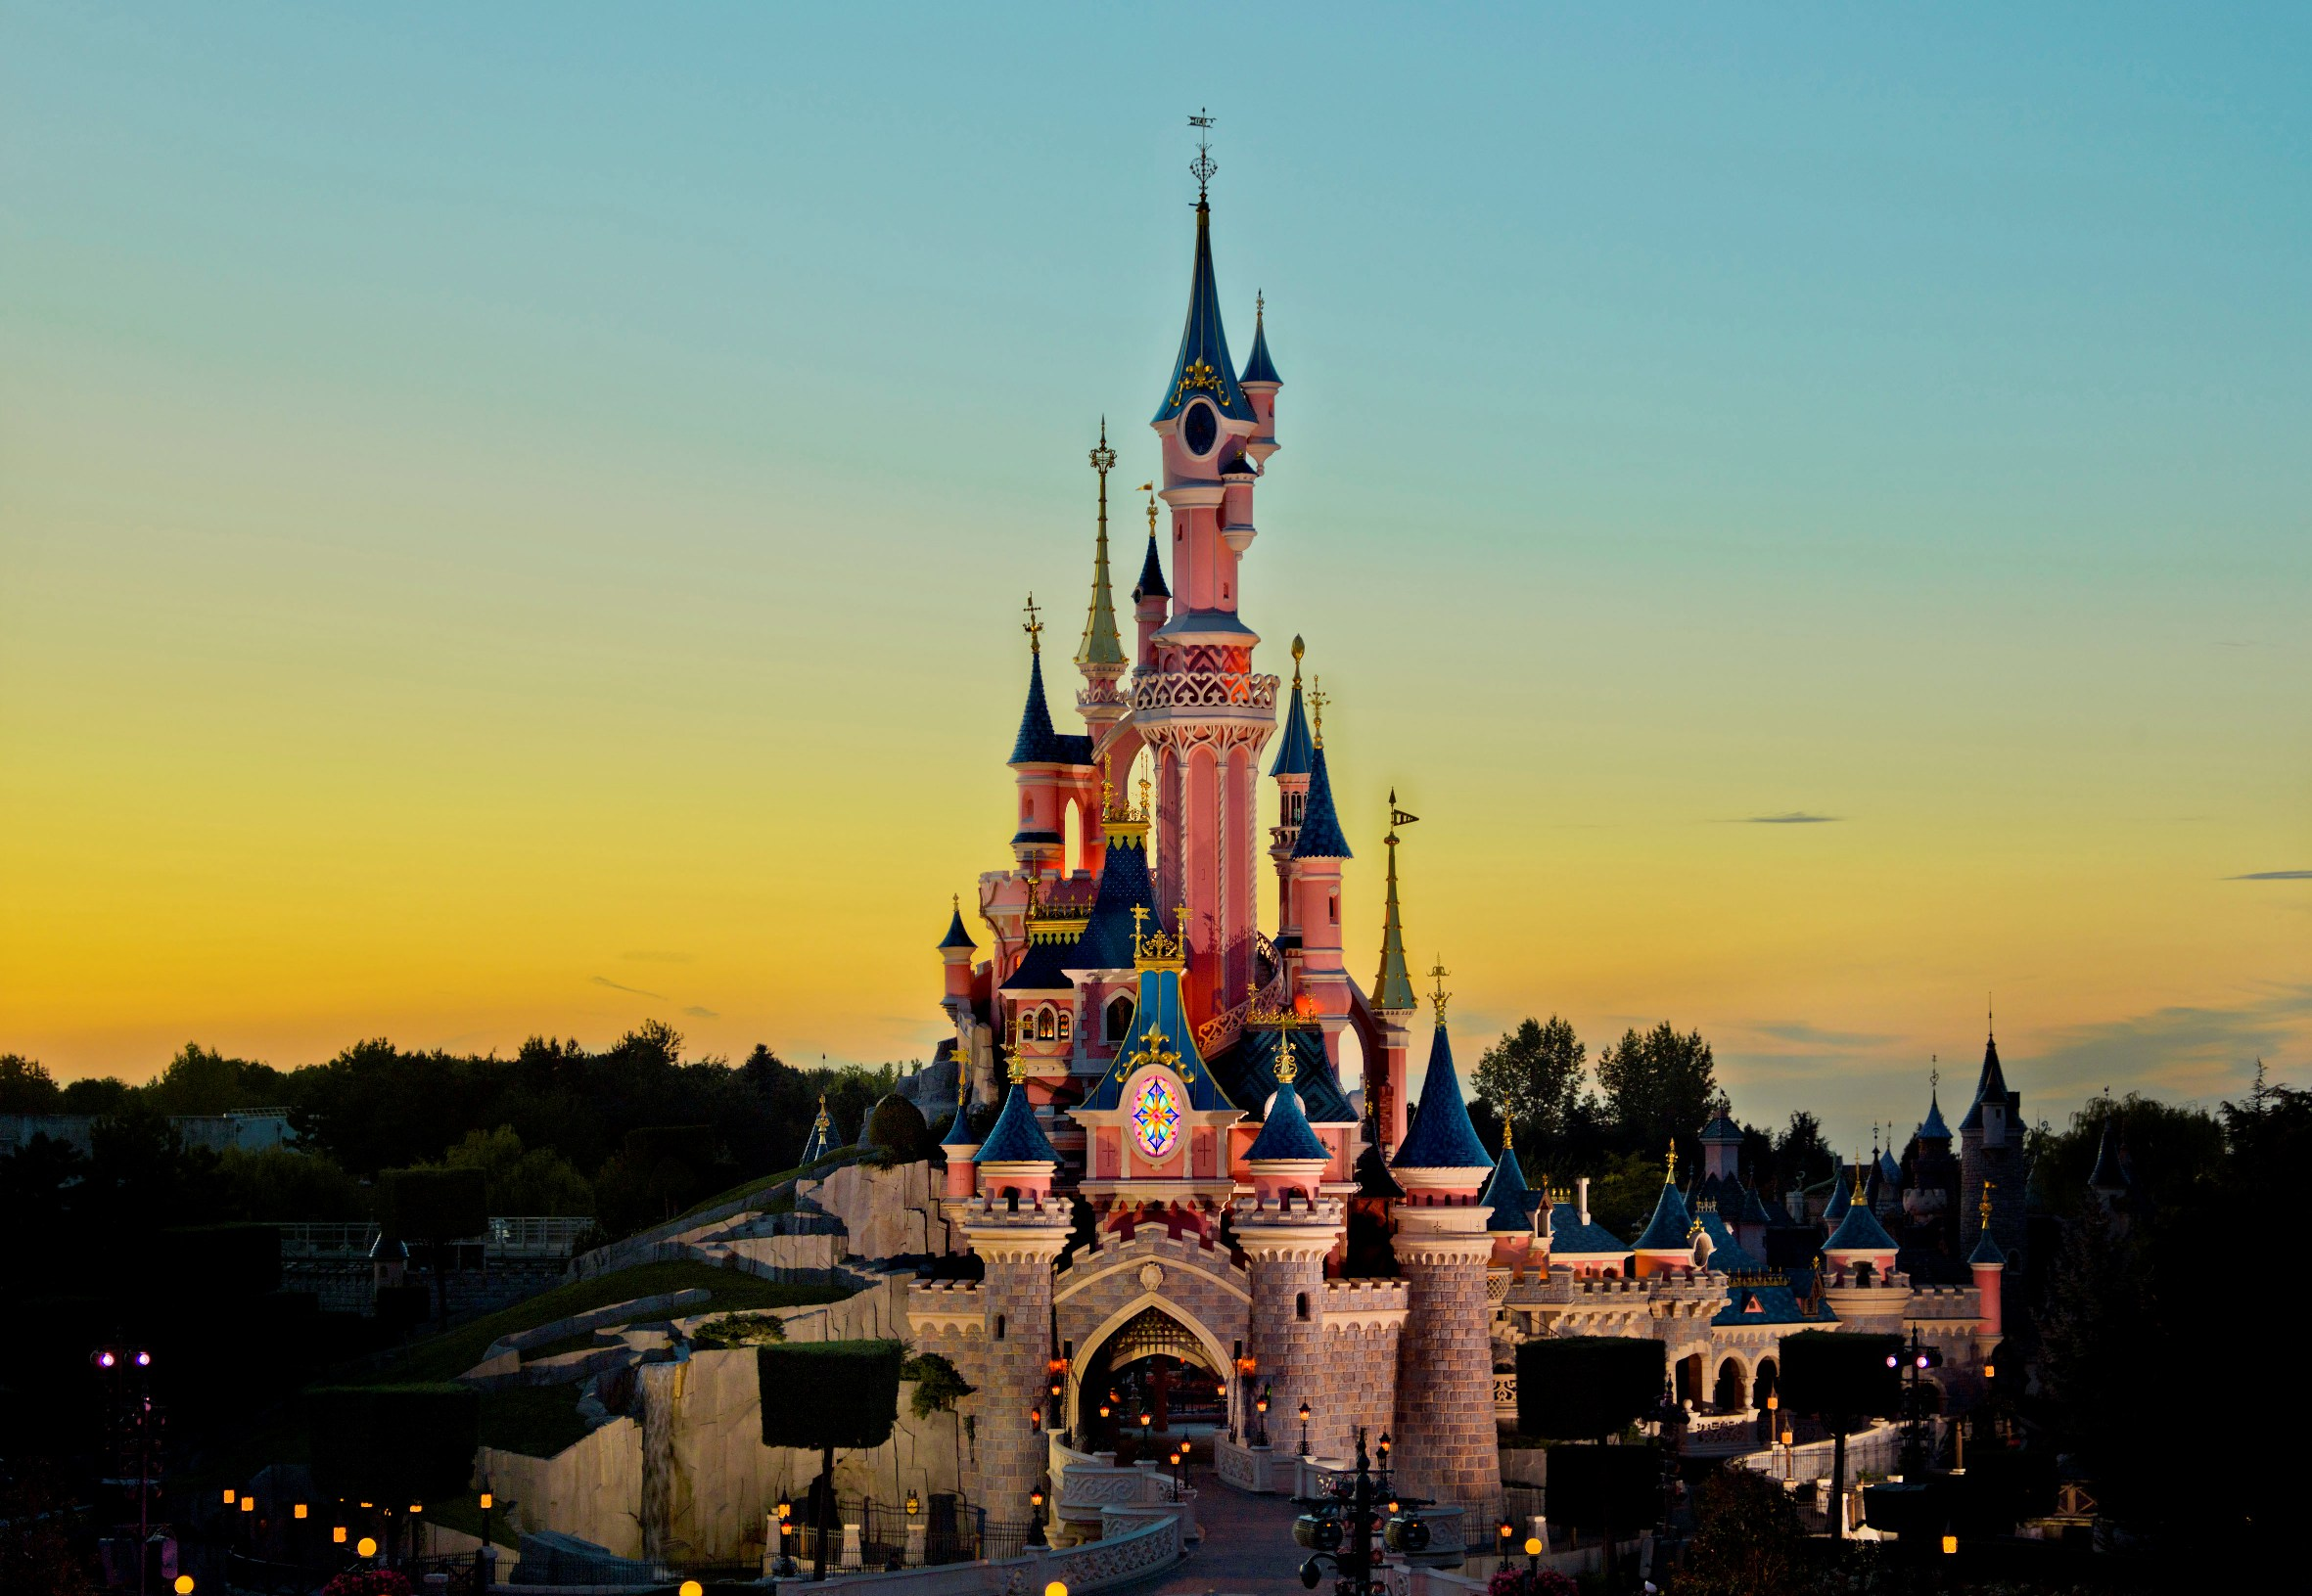 Connu disneyland paris trip | Tumblr IT04